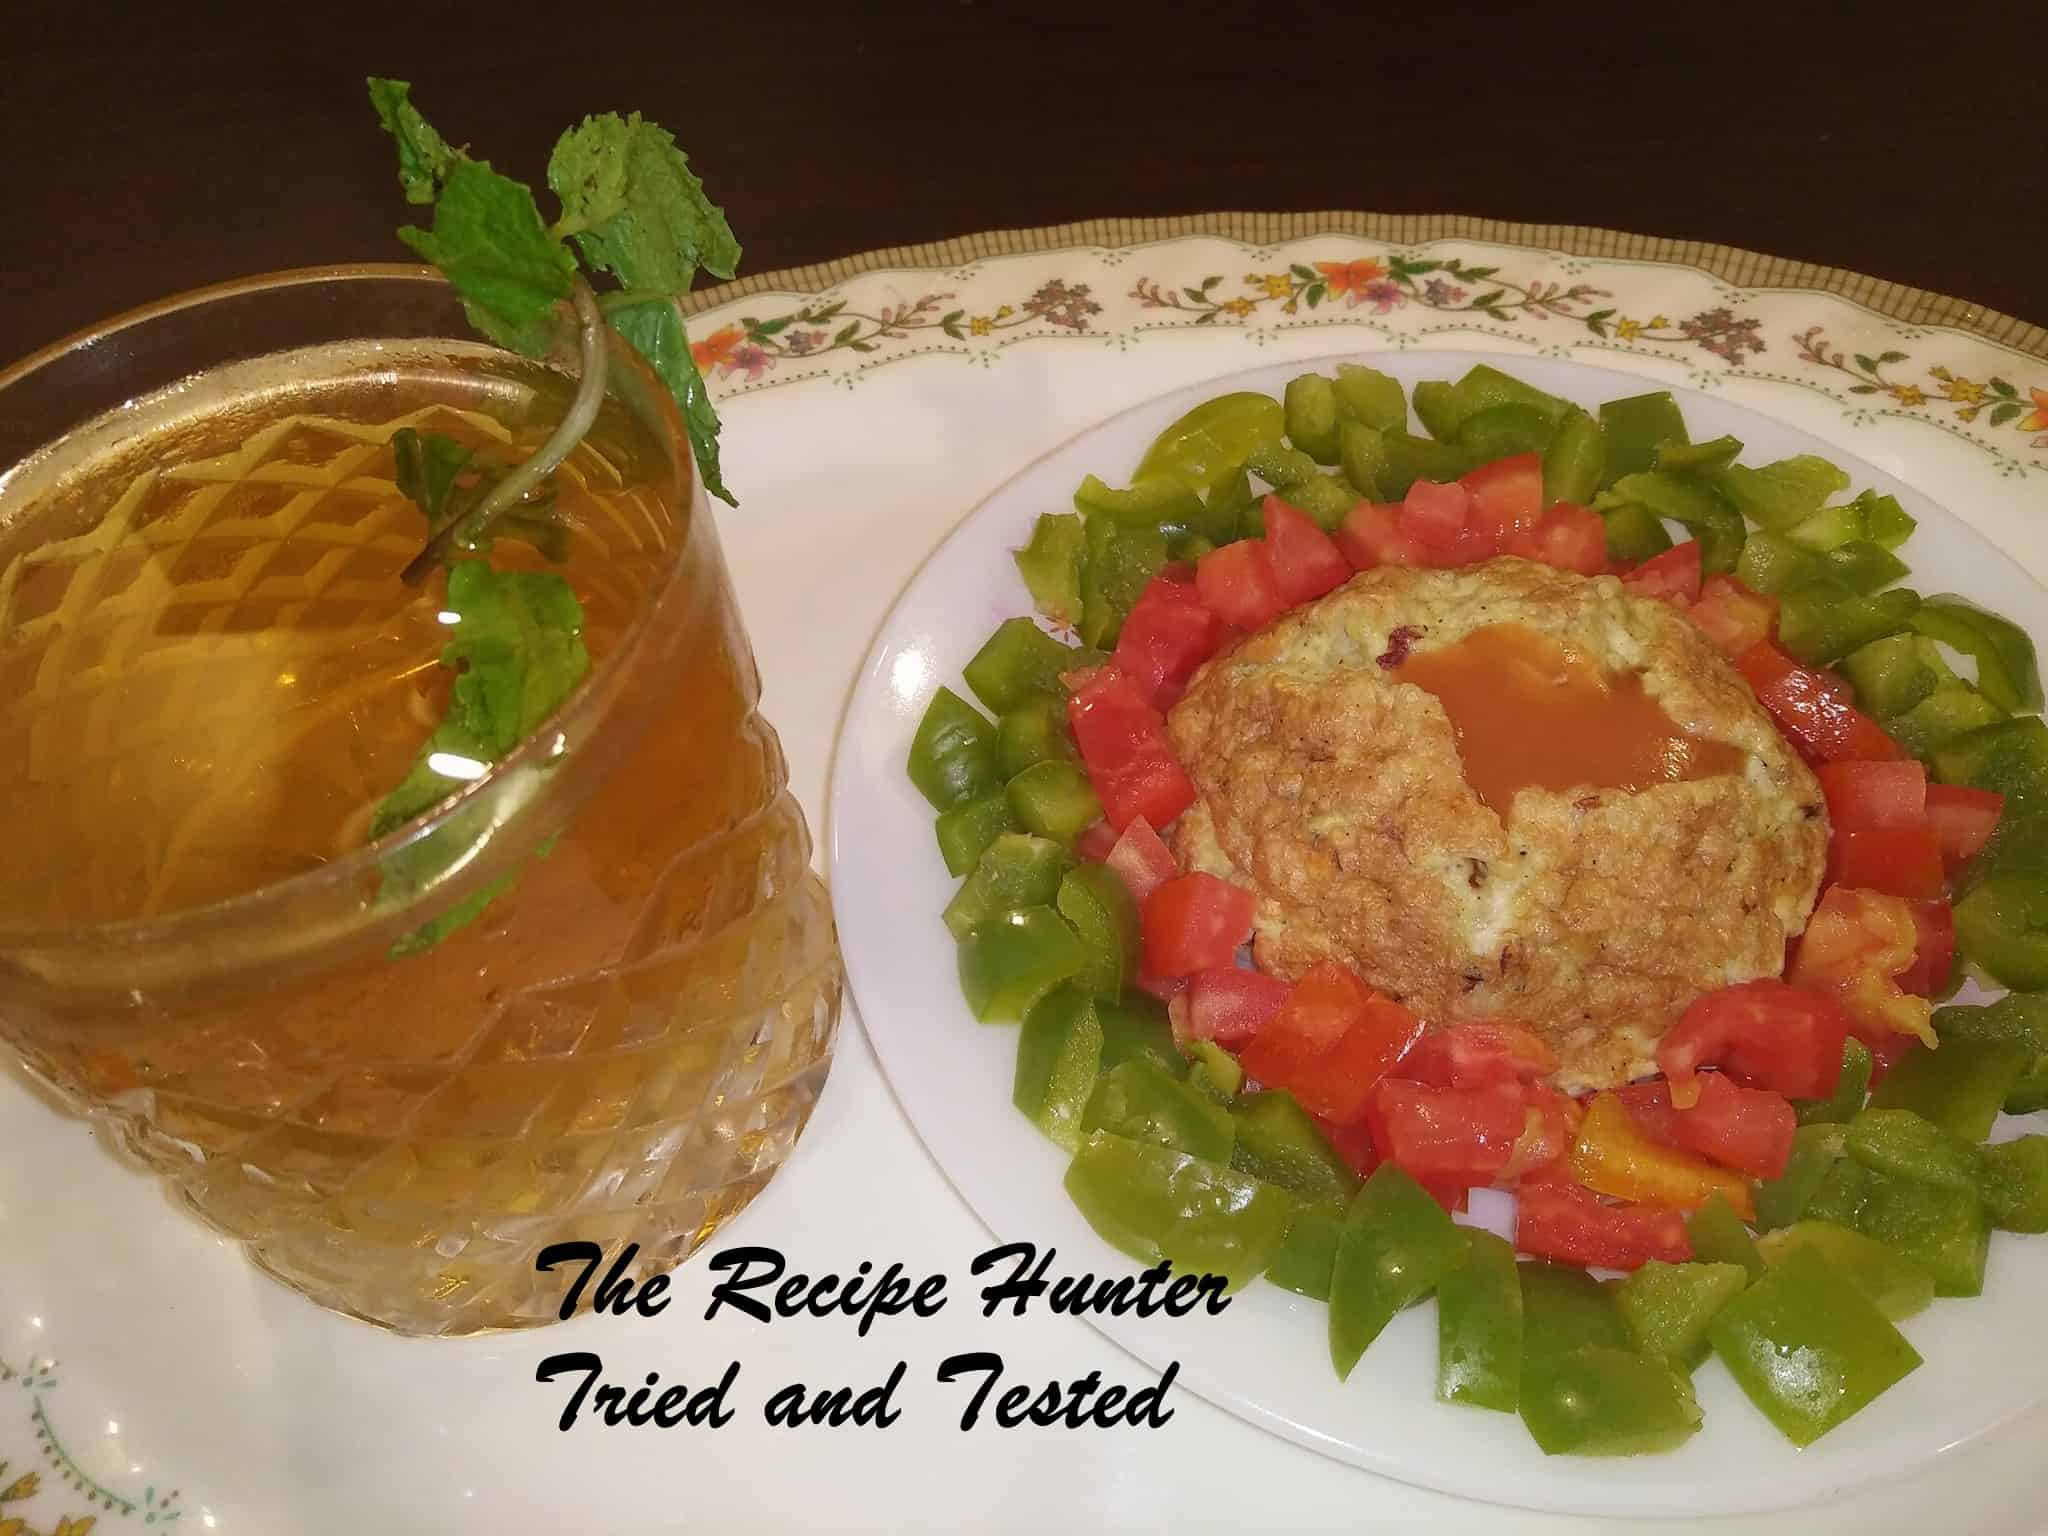 Moumita's Low Calorie Power Lunch With Homemade Digestive Drink